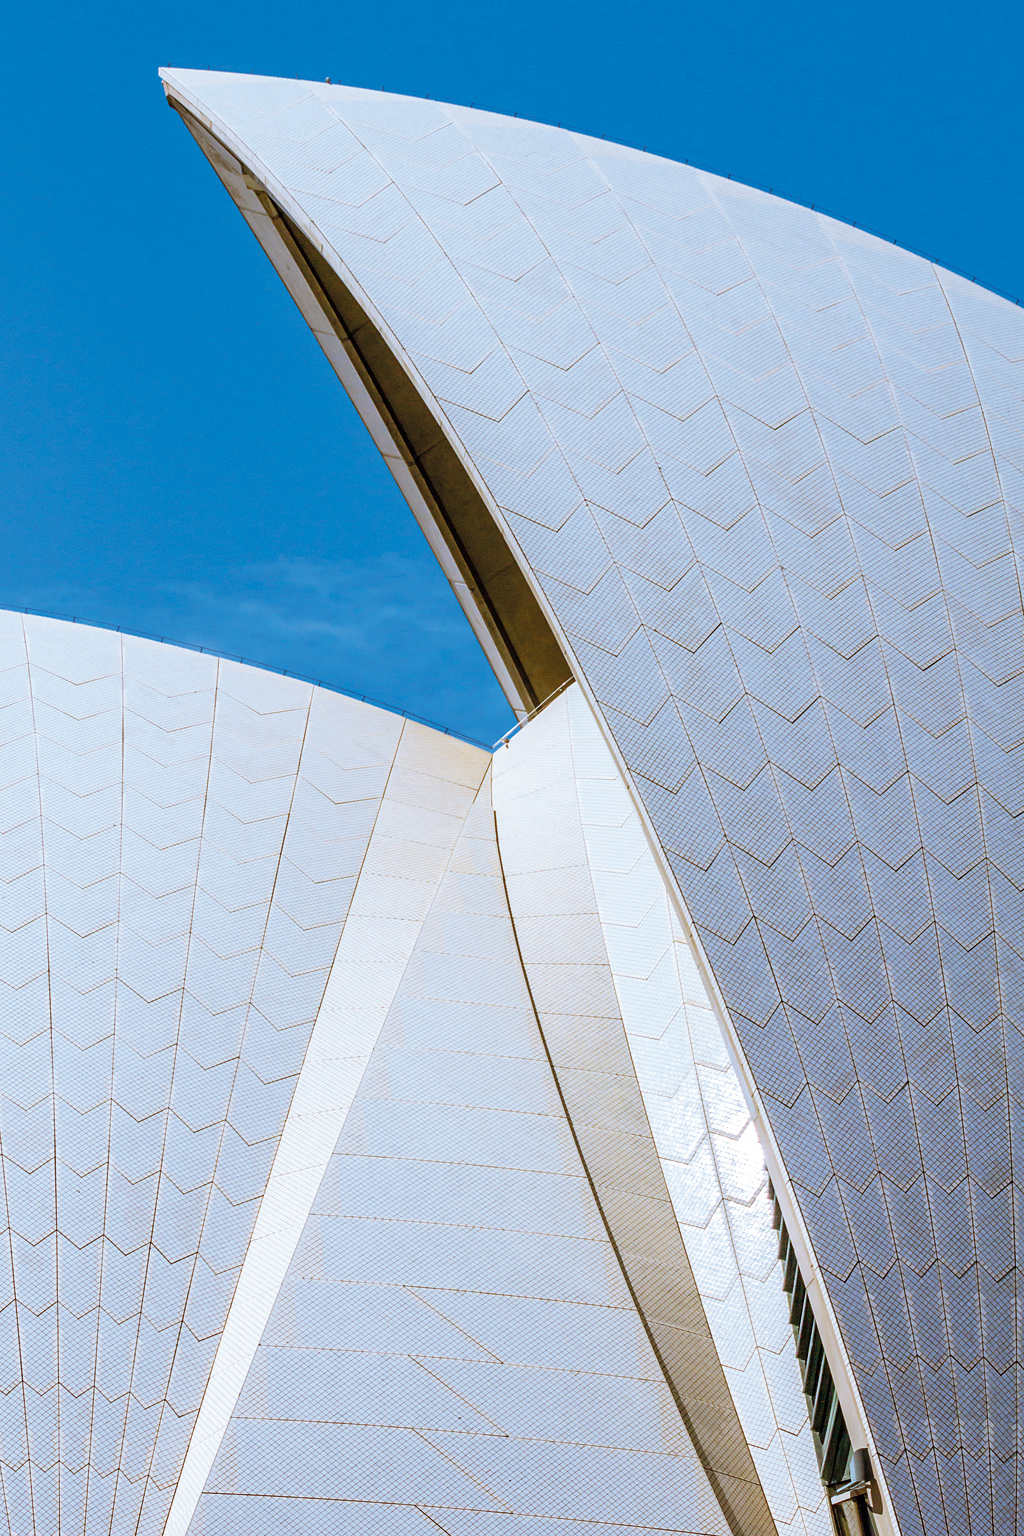 The Sydney Opera House in Australia. One of the worldÓ³ busiest performing arts venues, the Sydney Opera House holds over 1,500 performances and gets over 8 million visitors annually.